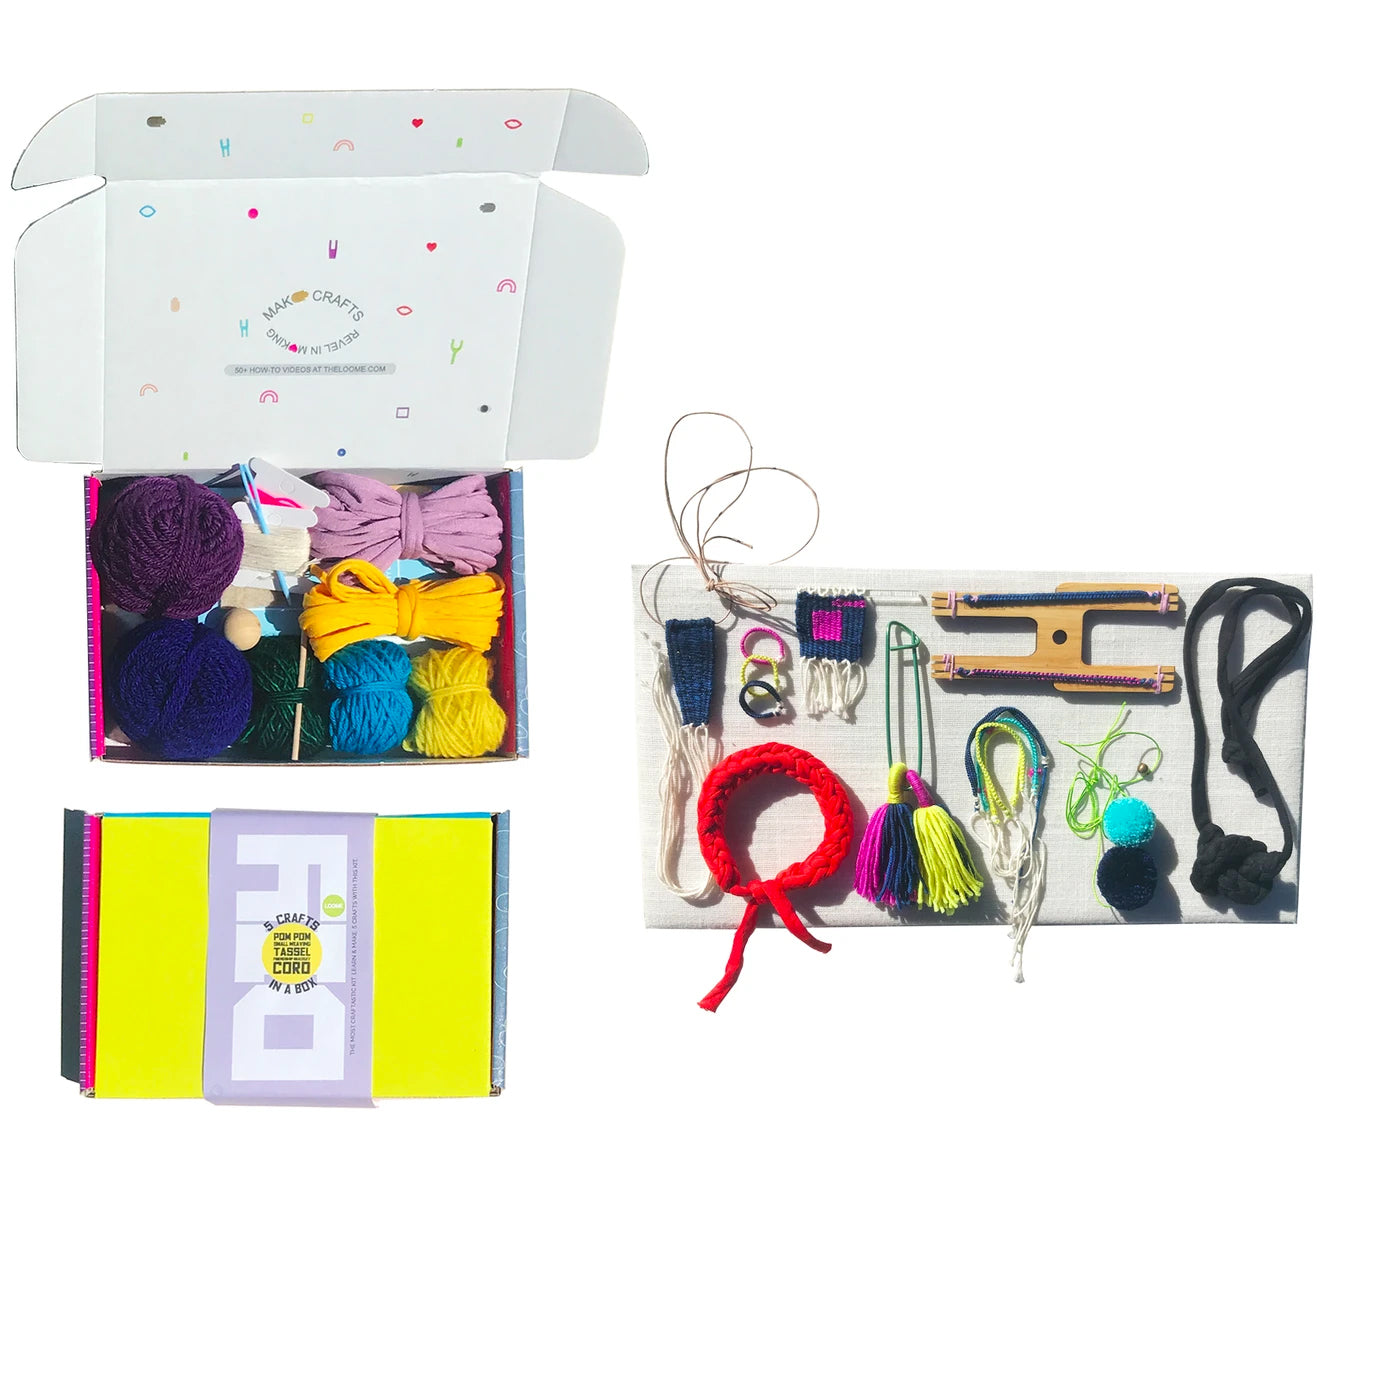 Loome Kit with 5 Crafts in a Box